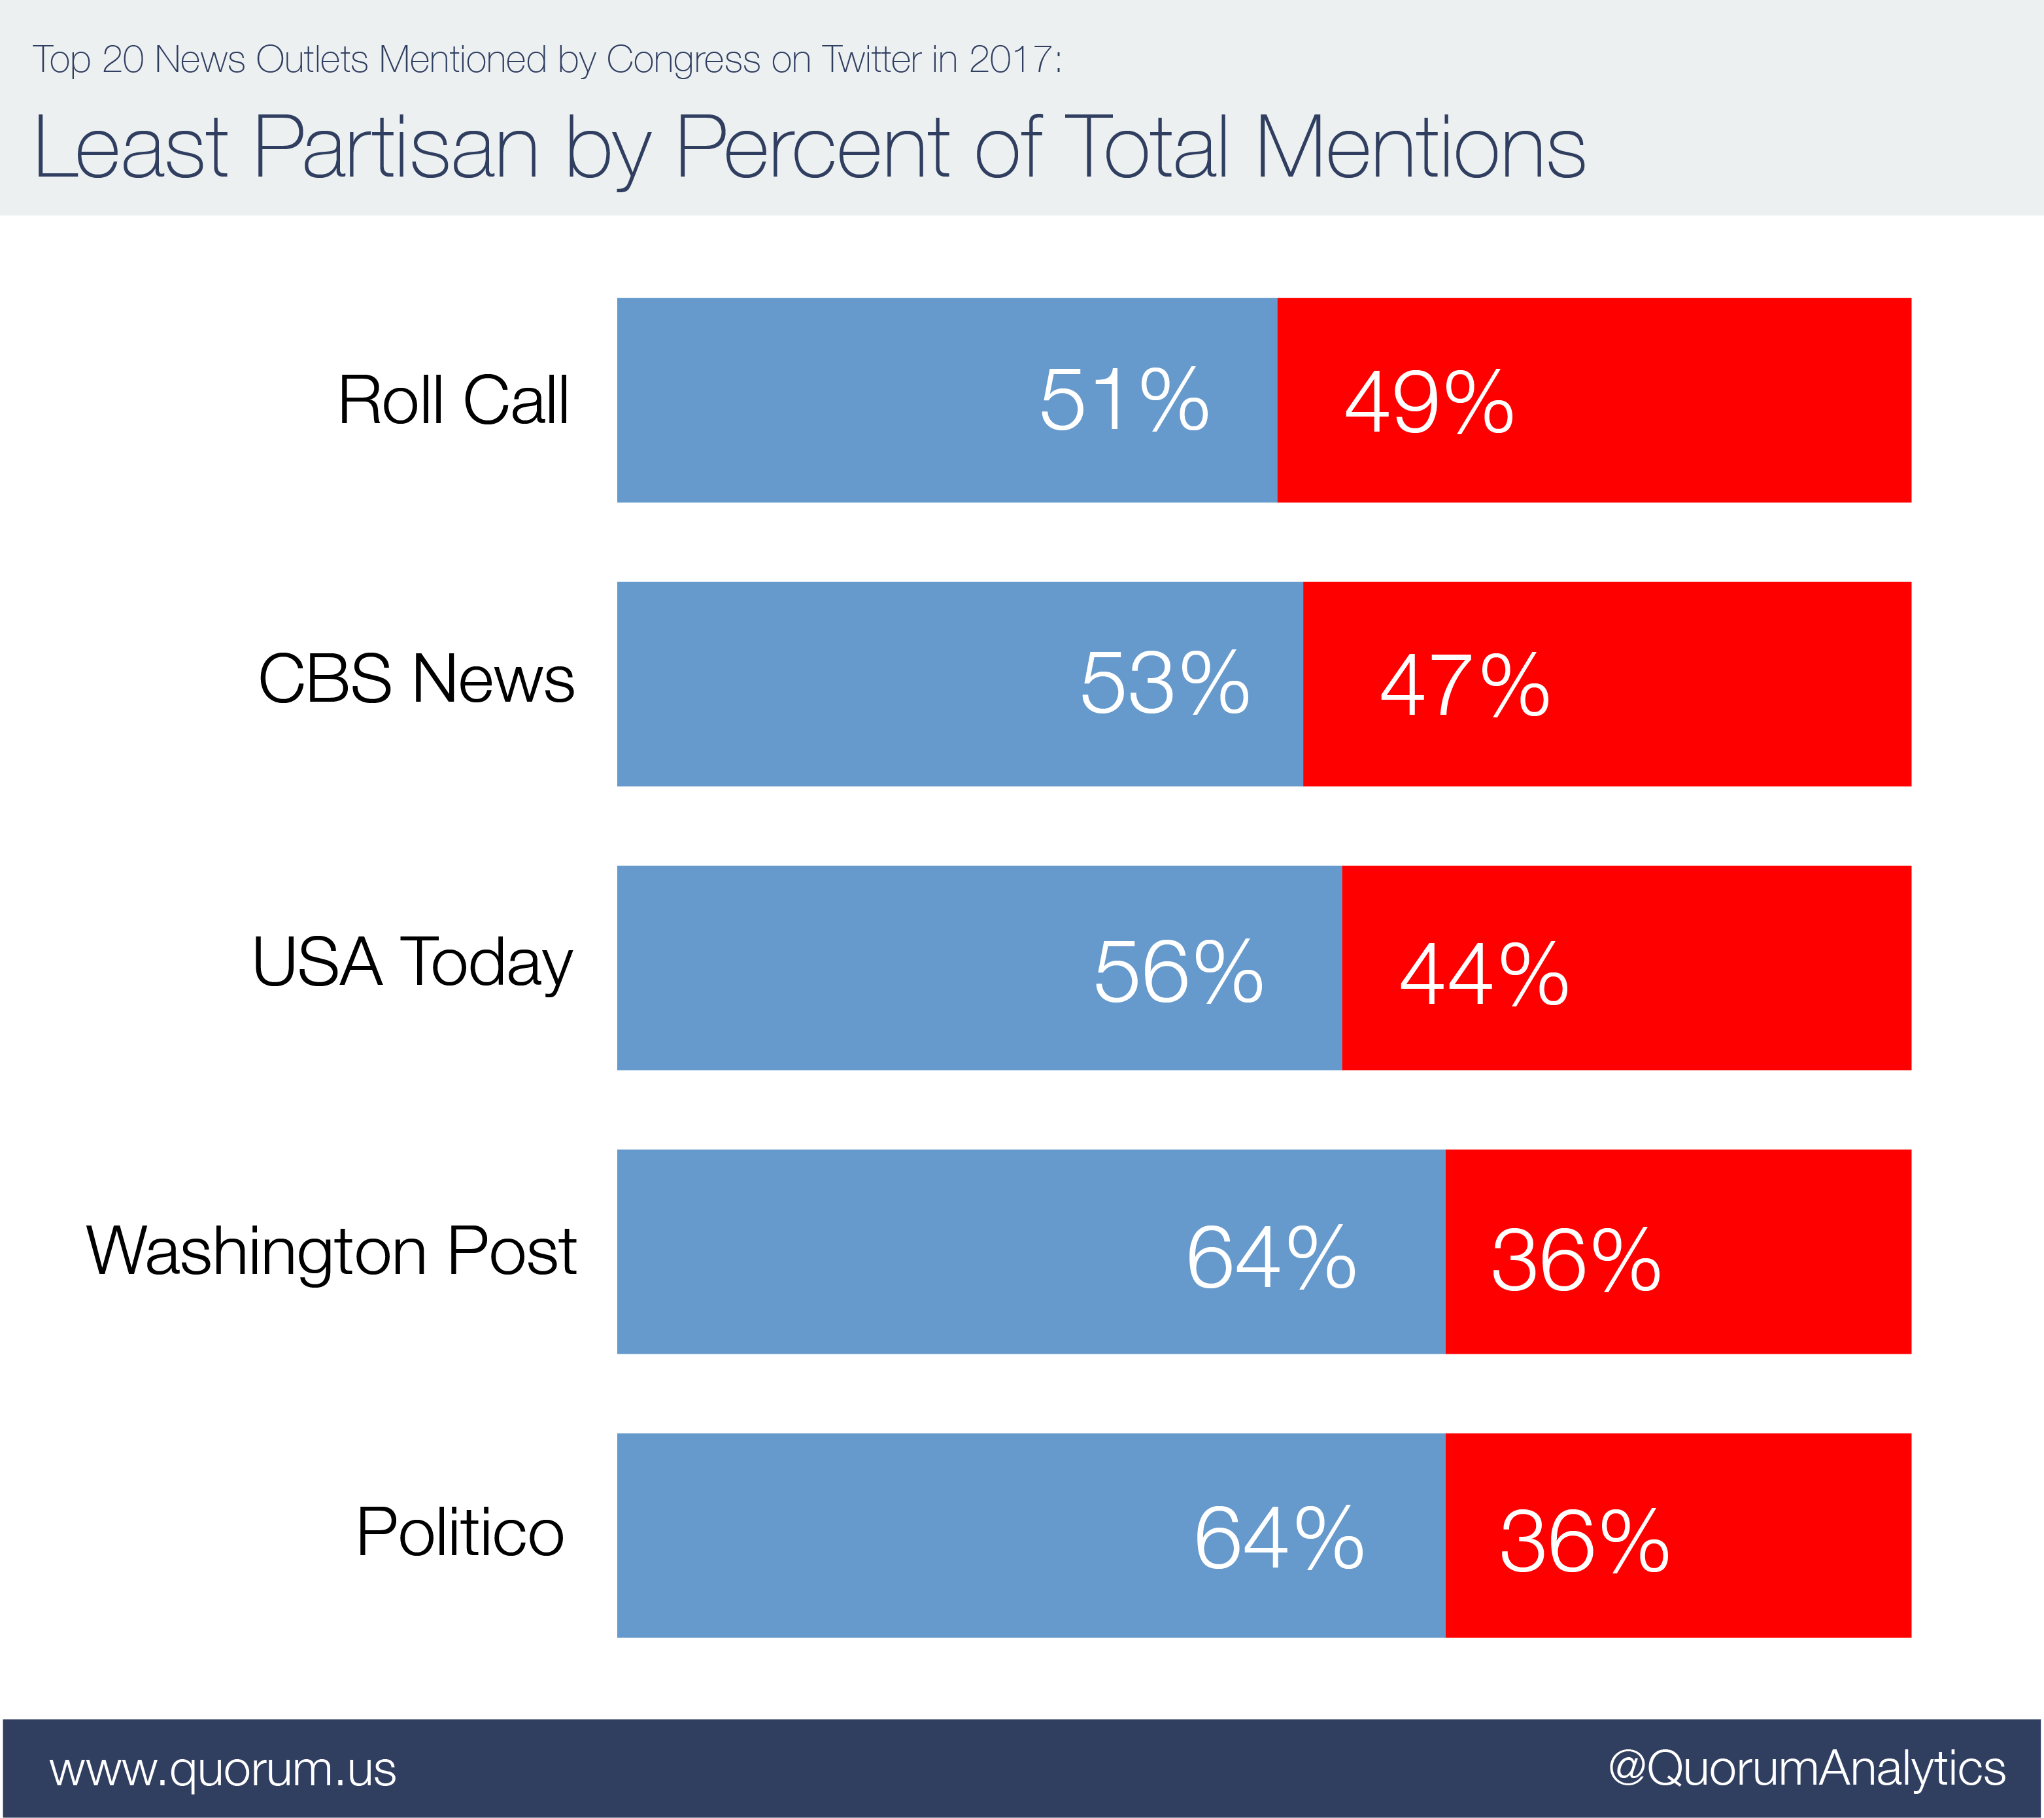 Top 20 news outlets mentioned by congress on twitter: Most Democratic by percent of total mentions.